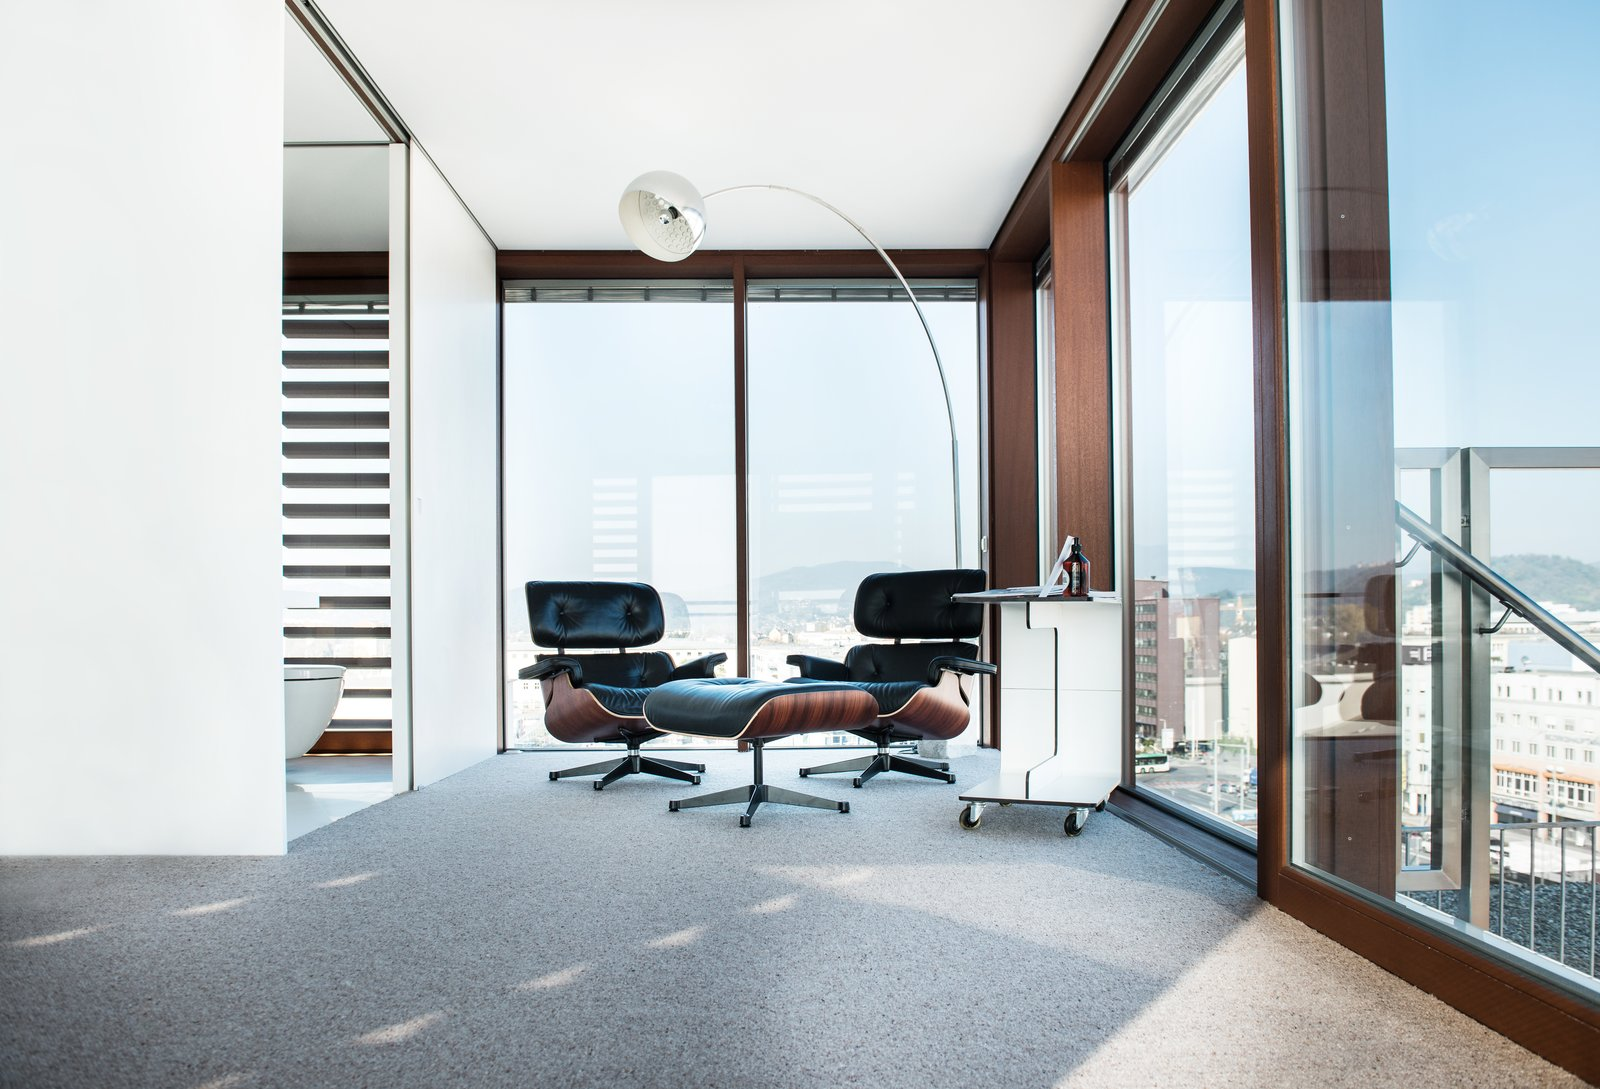 Living Room, Chair, Ottomans, Floor Lighting, and Carpet Floor  Photo 6 of 8 in Stay in a Prefab Cube Placed Atop a Midcentury Hotel in Austria